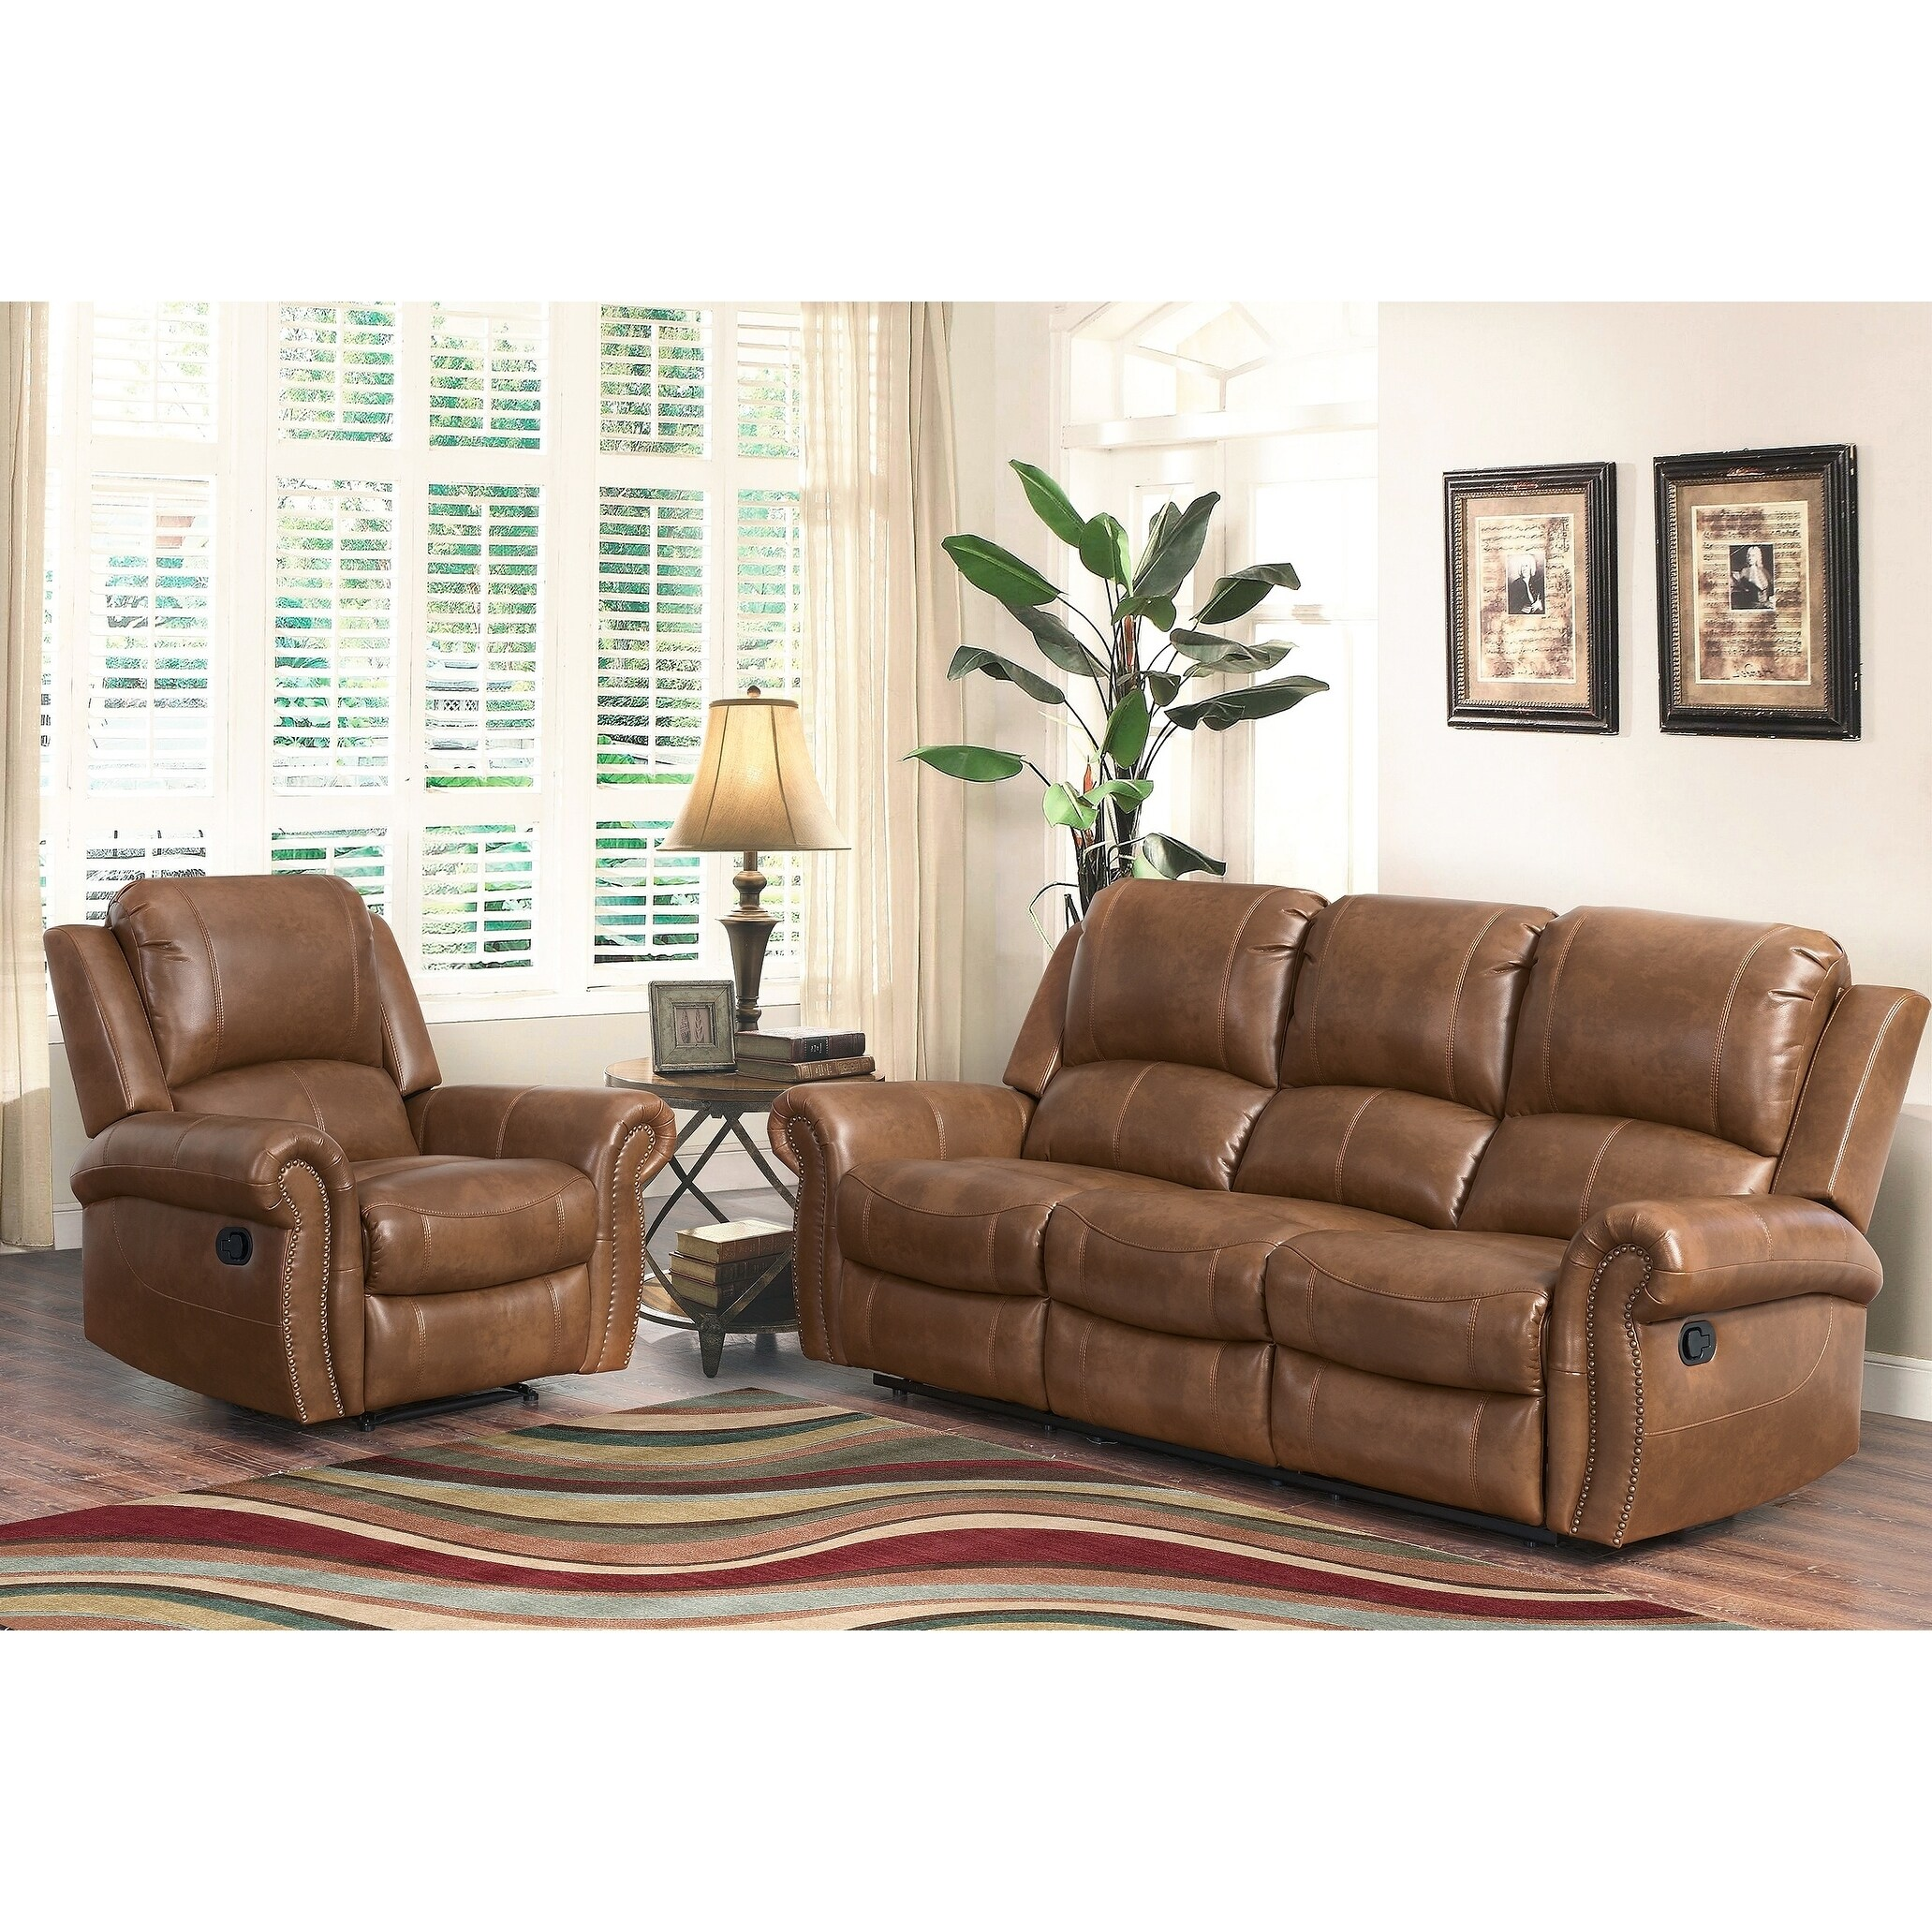 Abbyson Skyler Cognac 2-piece Leather Reclining Living Room Set